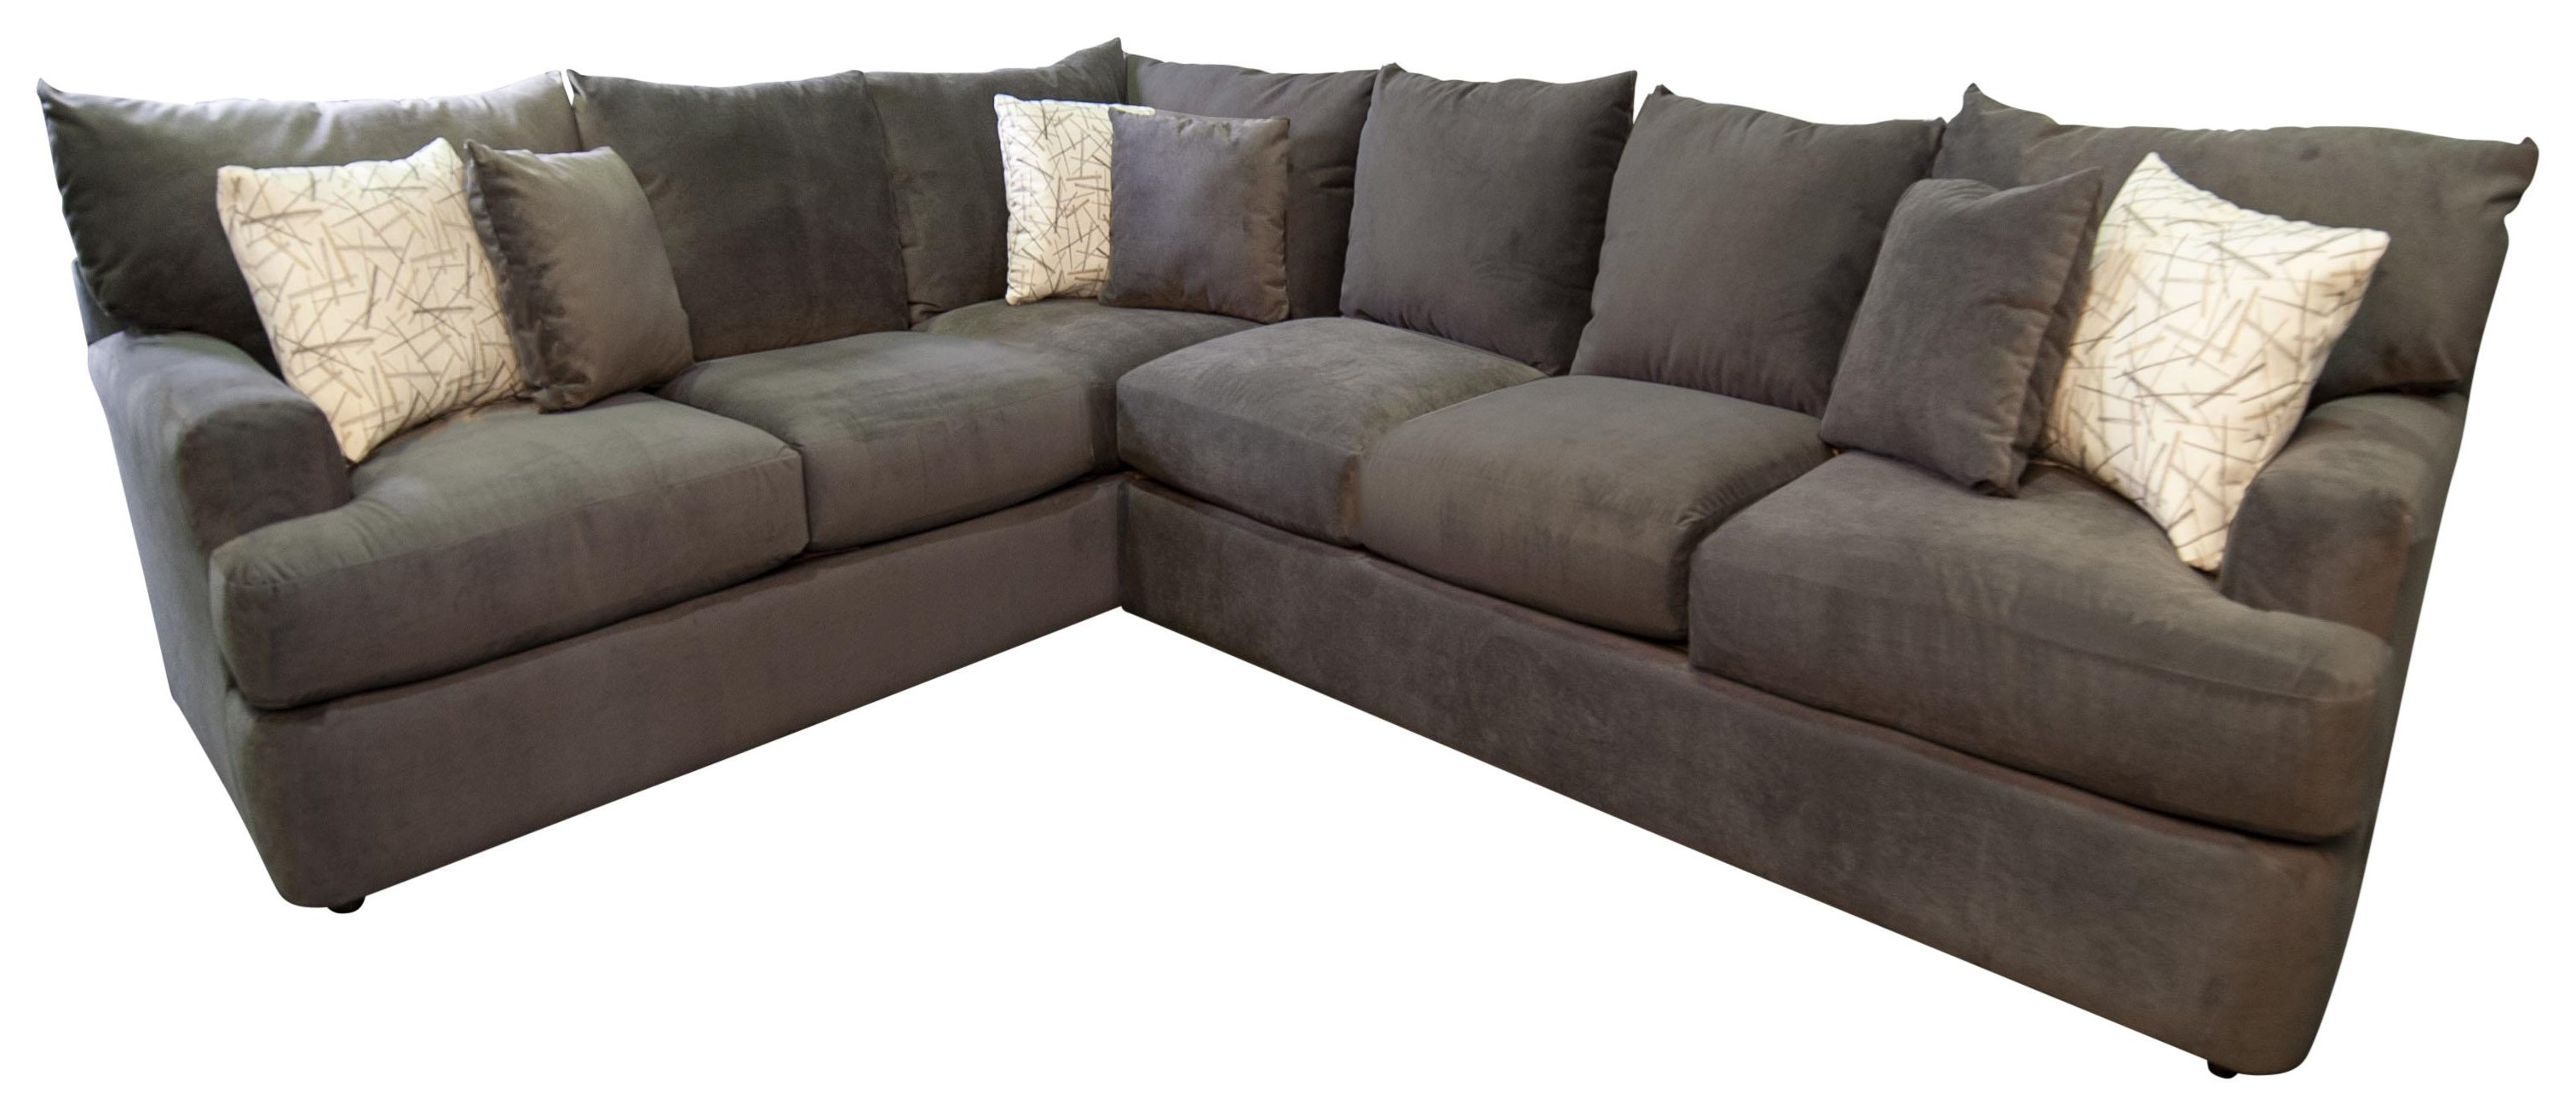 Klaussner Gwendolyn Sectional Sofa Morris Home Sectional Sofas